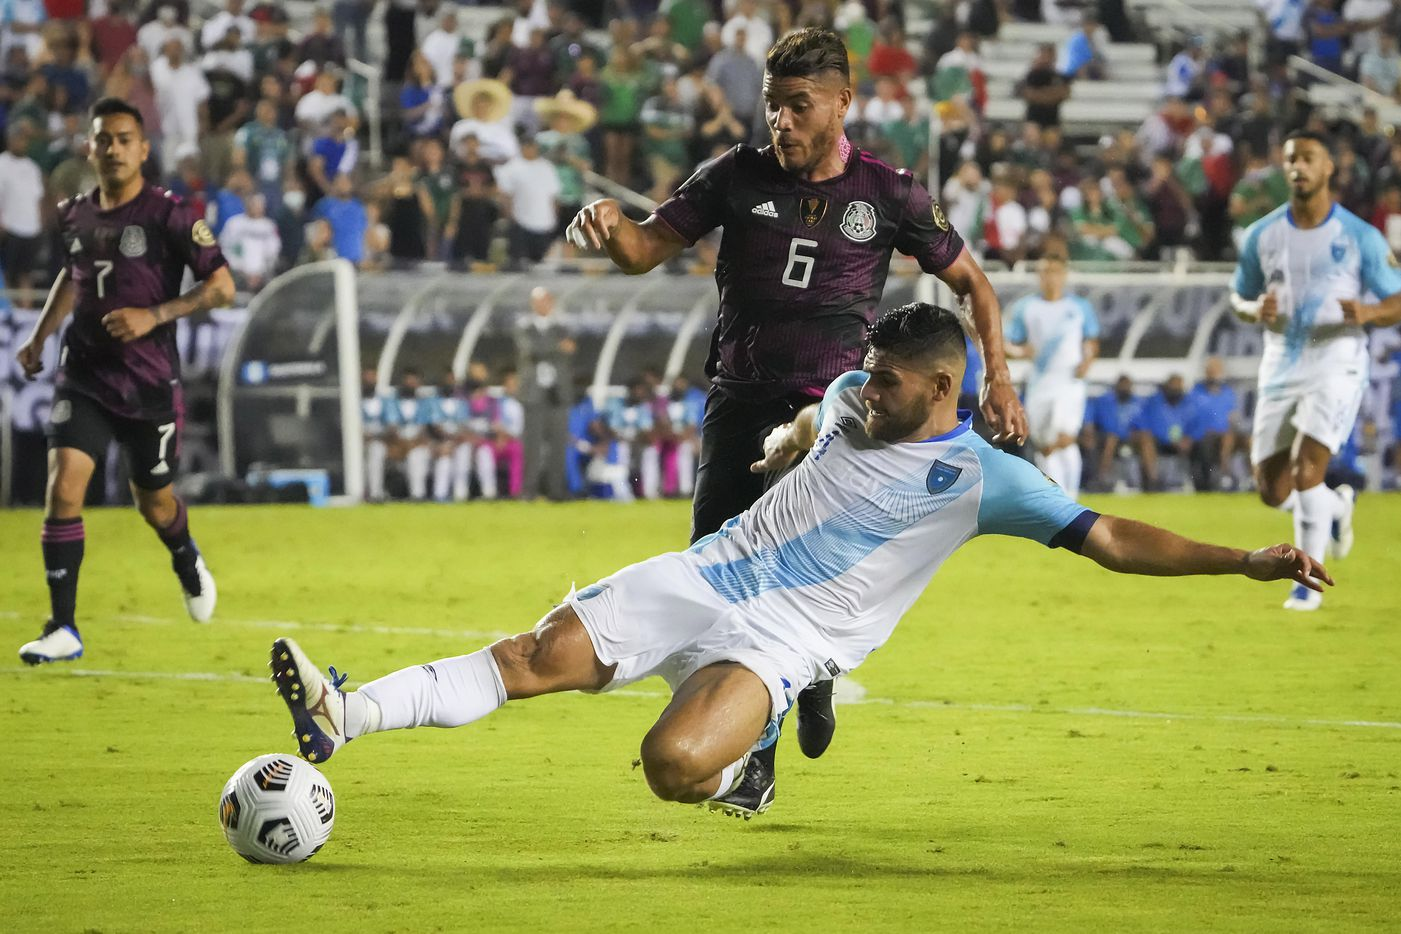 Guatemala defender José Pinto (4) knocks the ball away from Mexico midfielder Jonathan dos Santos (6) during the second half of a CONCACAF Gold Cup Group A soccer match at the Cotton Bowl on Wednesday, July 14, 2021, in Dallas.